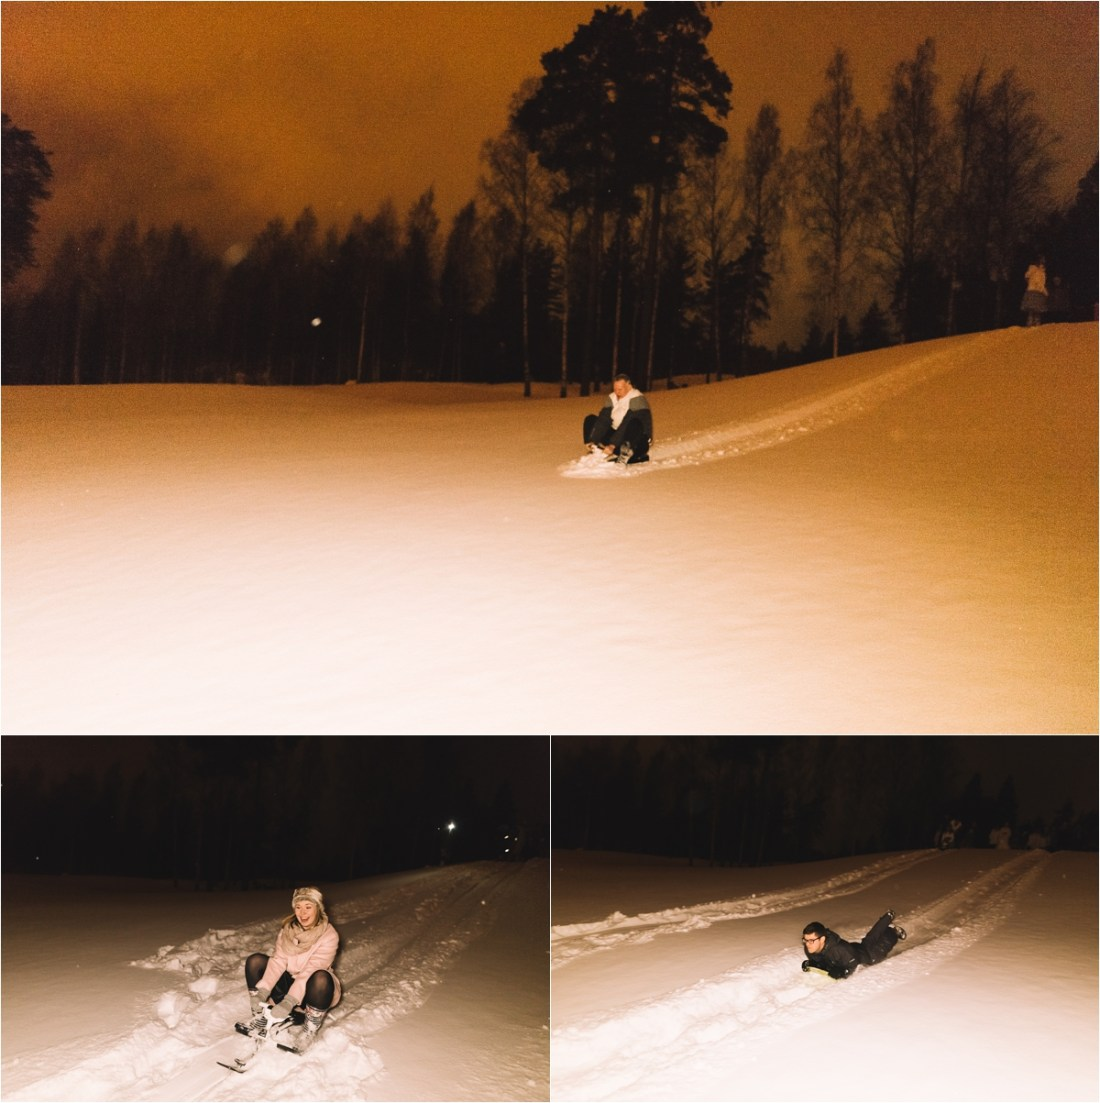 Late night wedding sledding in the snow by Lucie Watson Photography